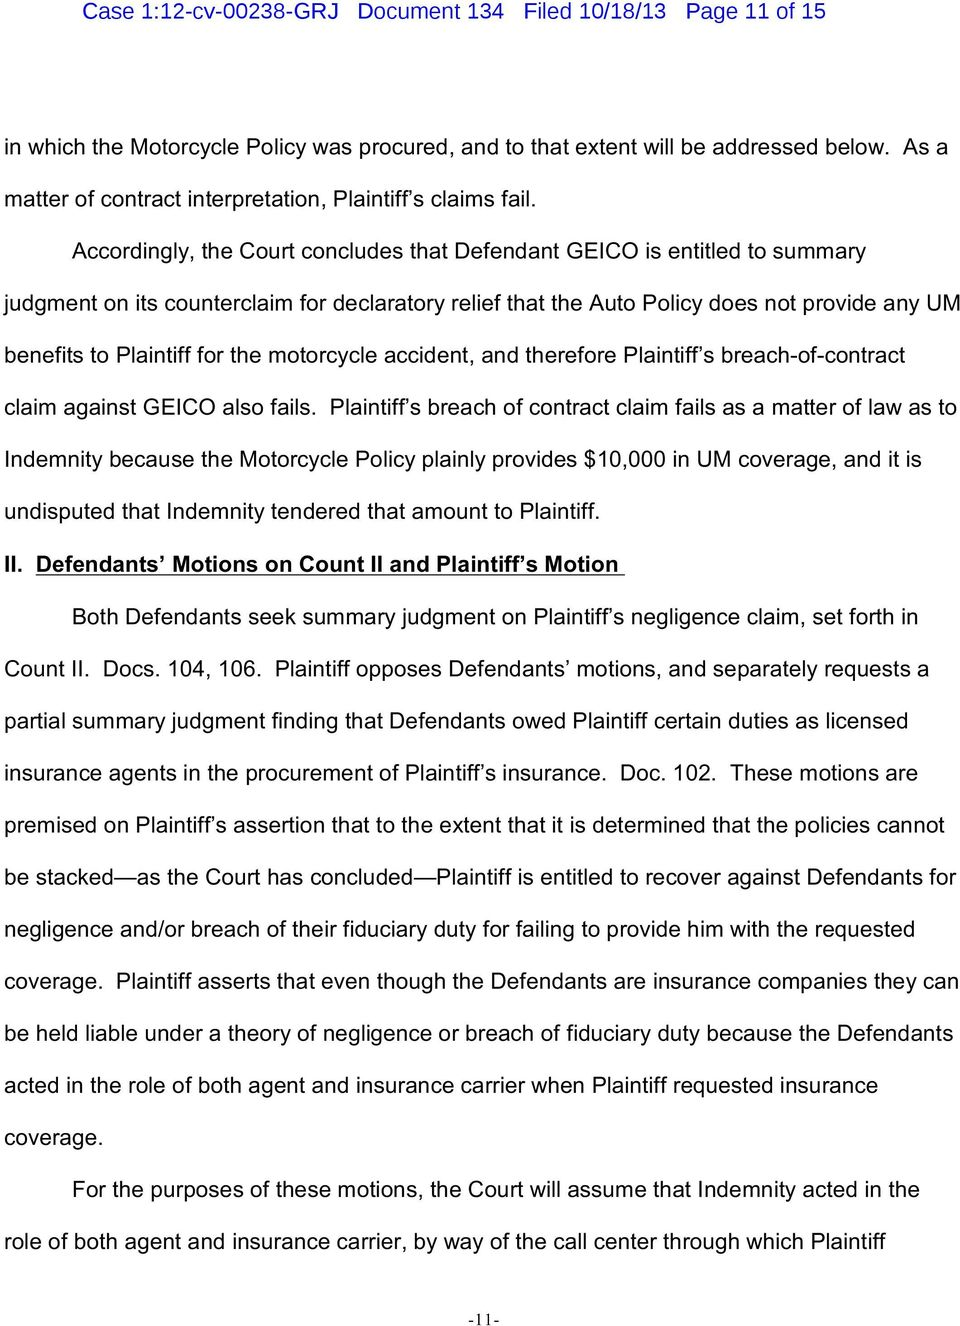 Accordingly, the Court concludes that Defendant GEICO is entitled to summary judgment on its counterclaim for declaratory relief that the Auto Policy does not provide any UM benefits to Plaintiff for